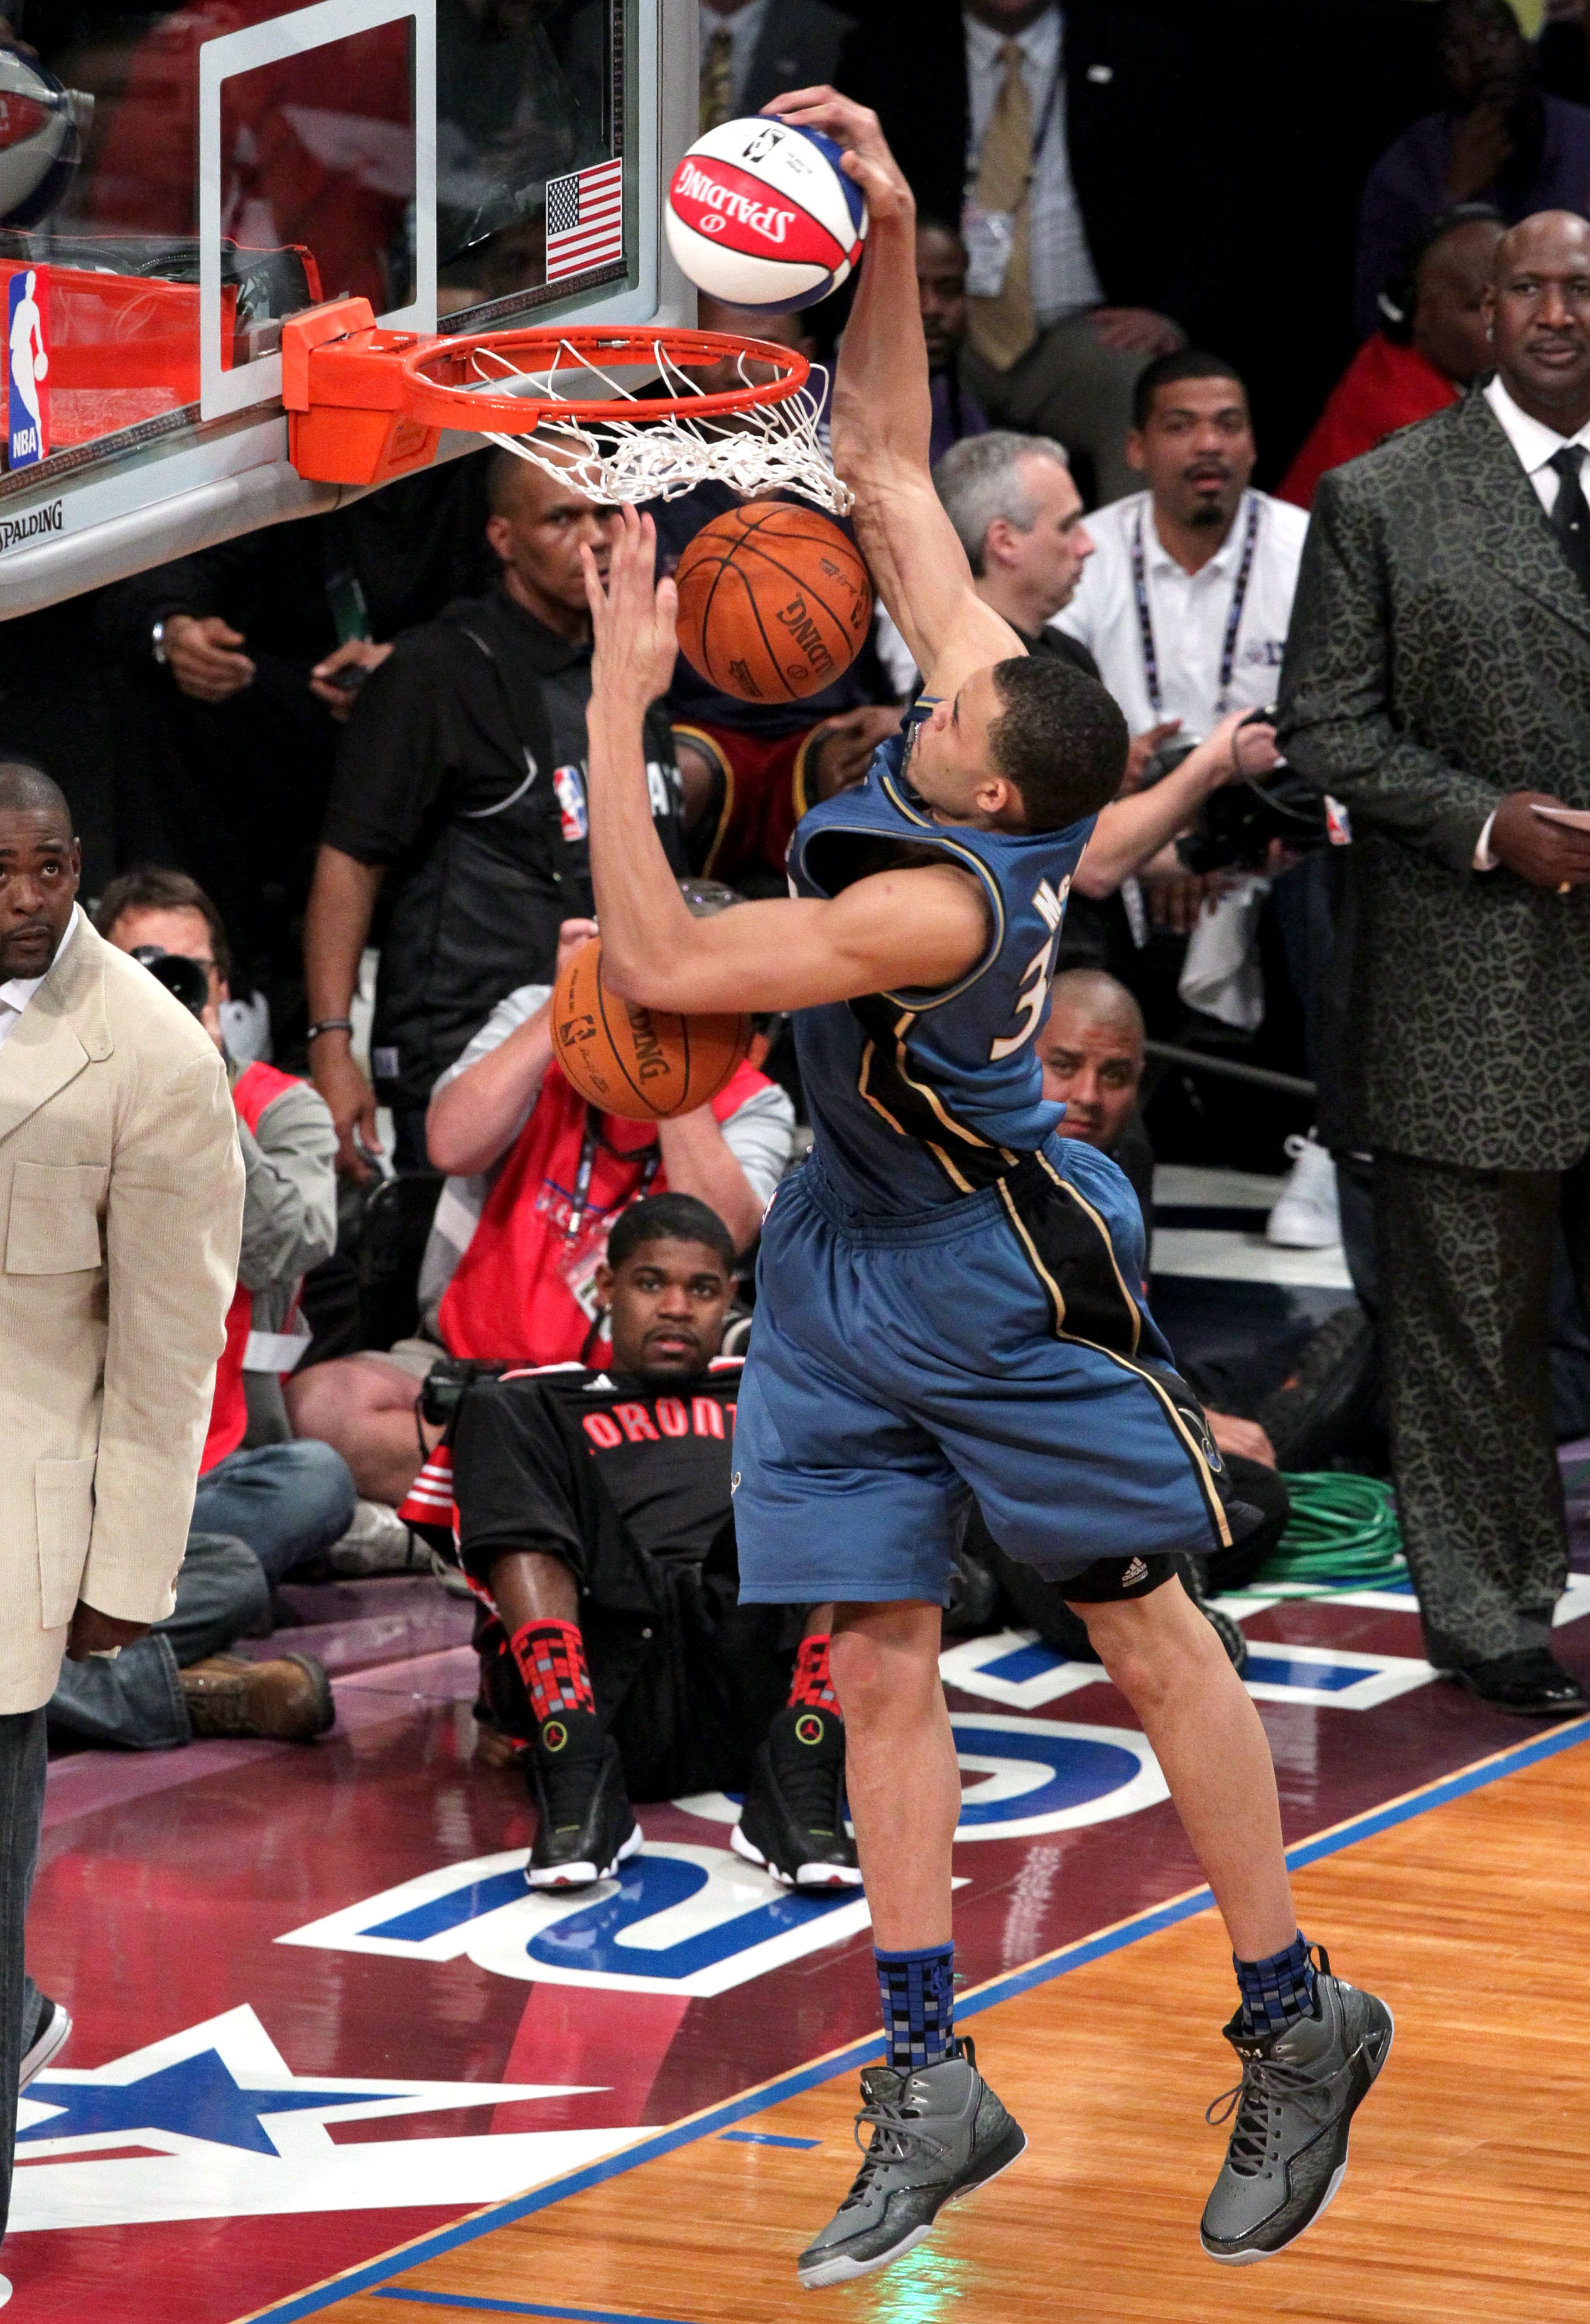 LOS ANGELES, CA - FEBRUARY 19:  JaVale McGee #34 of the Washington Wizards dunks in the Sprite Slam Dunk Contest apart of NBA All-Star Saturday Night at Staples Center on February 19, 2011 in Los Angeles, California. NOTE TO USER: User expressly acknowled